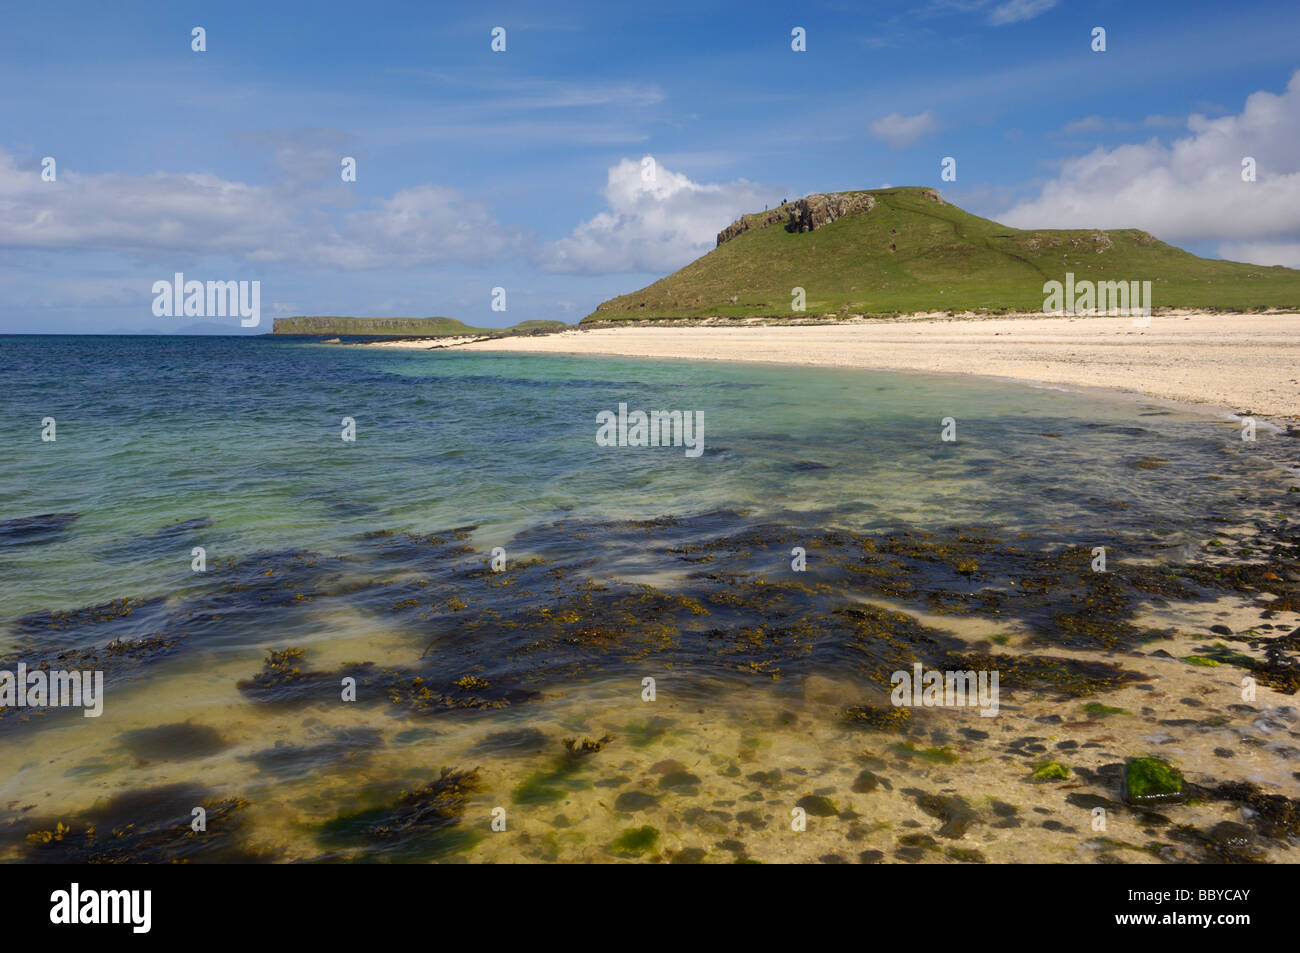 Coral Beach at An Dorneil, Loch Dunvegan, Isle of Skye, Scotland - Stock Image